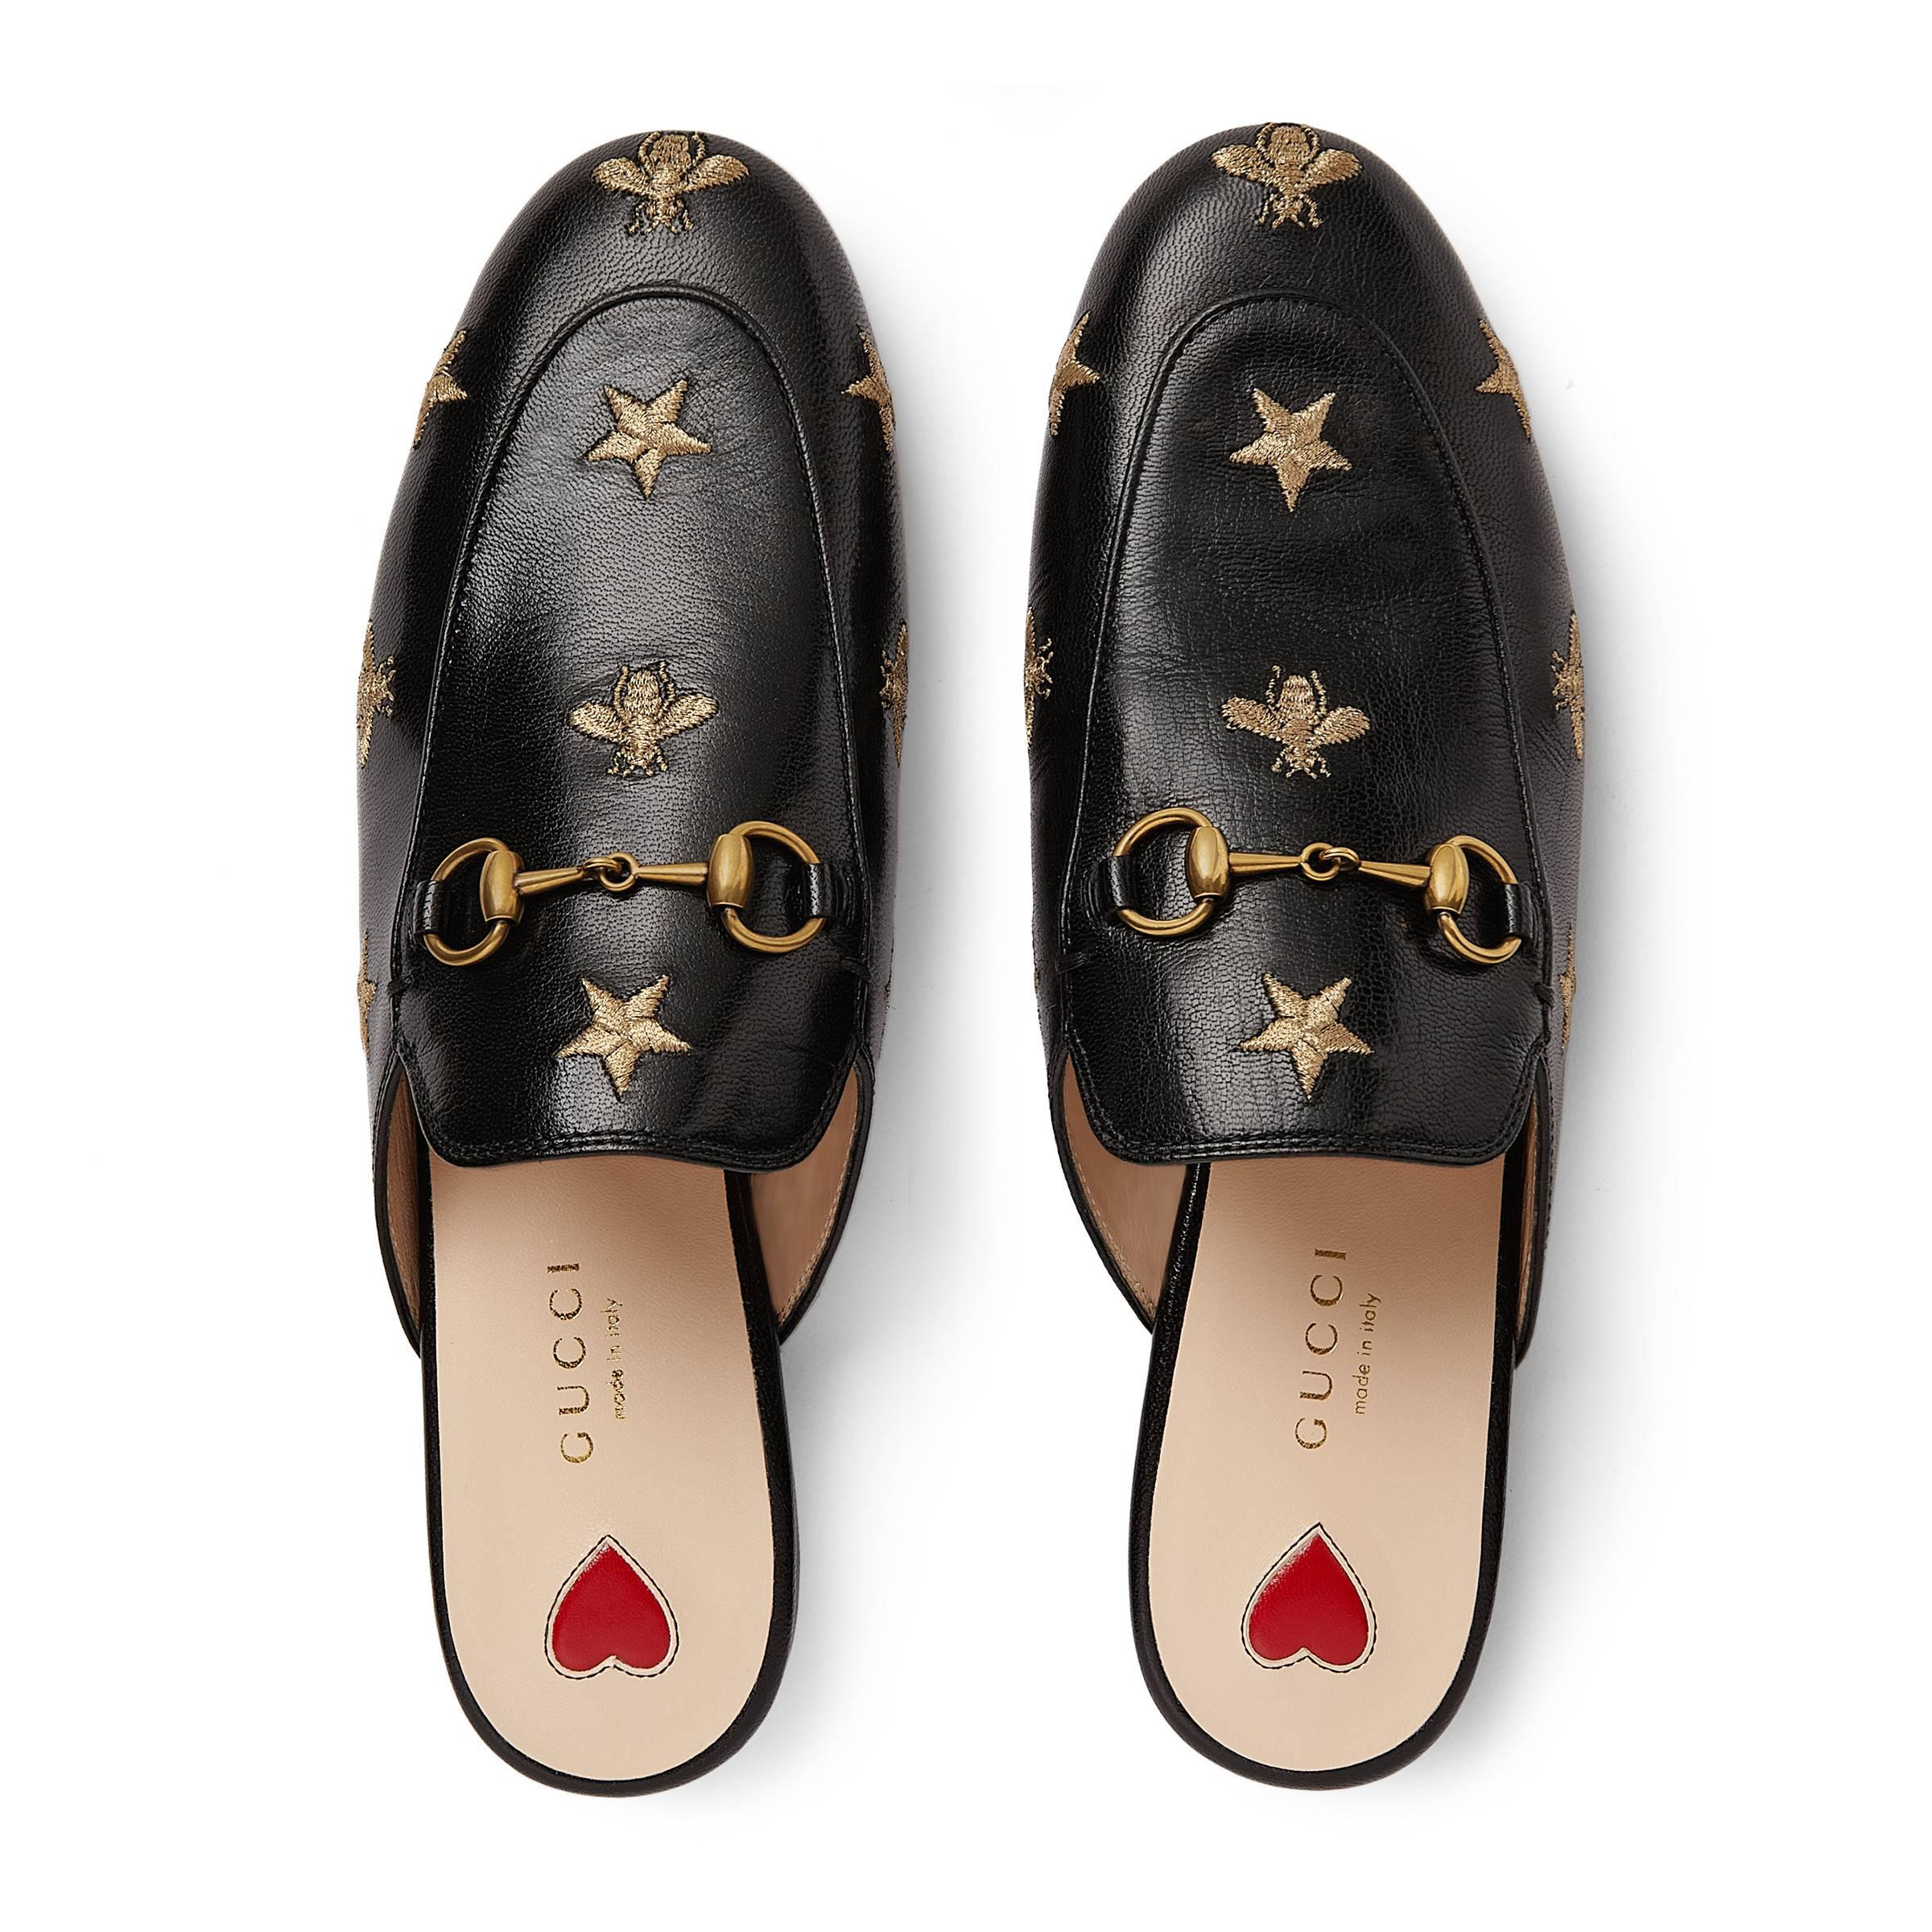 0db74f46e47 Gucci - Black 10mm Princetown Embroidered Leather Mule - Lyst. View  fullscreen